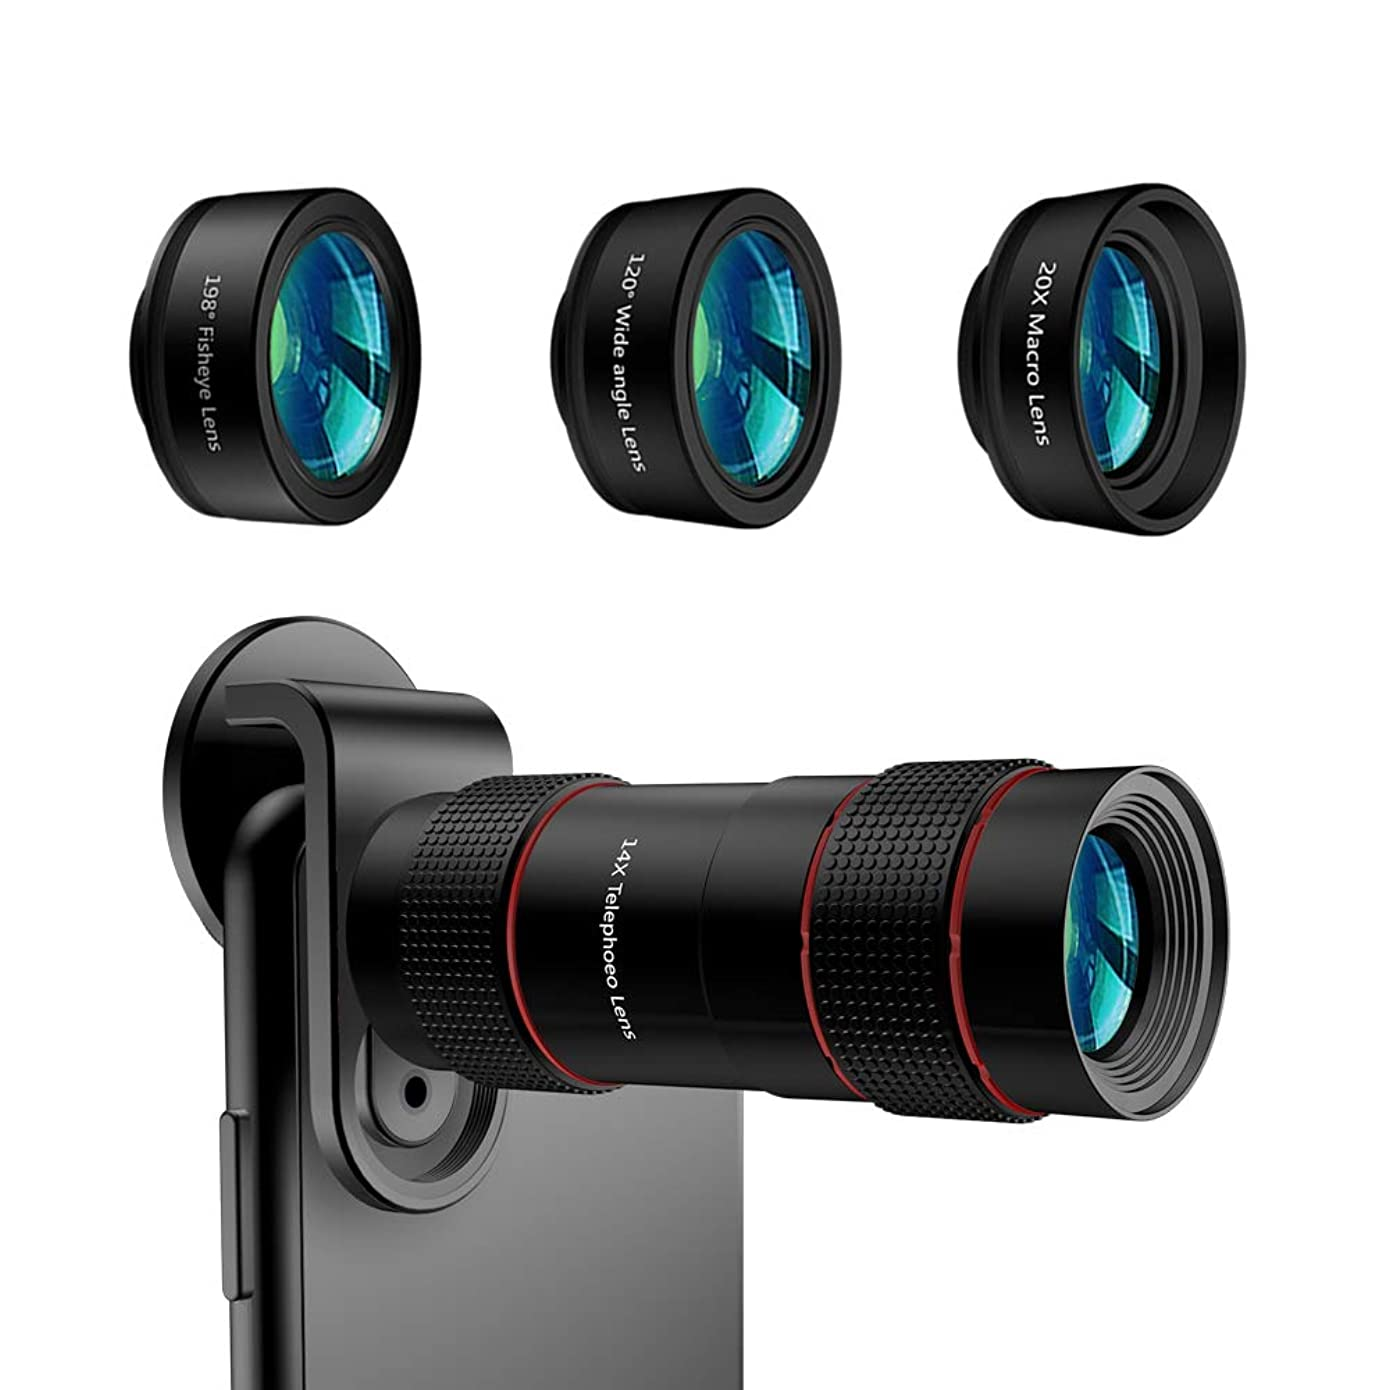 Cell Phone Camera Lens,TODI 4K HD 2 in 1 Aspherical Wide Angle Lens No Distortion Super Macro Lens,Clip-On Phone Lens Compatible iPhone,Samsung Most Andriod Phones